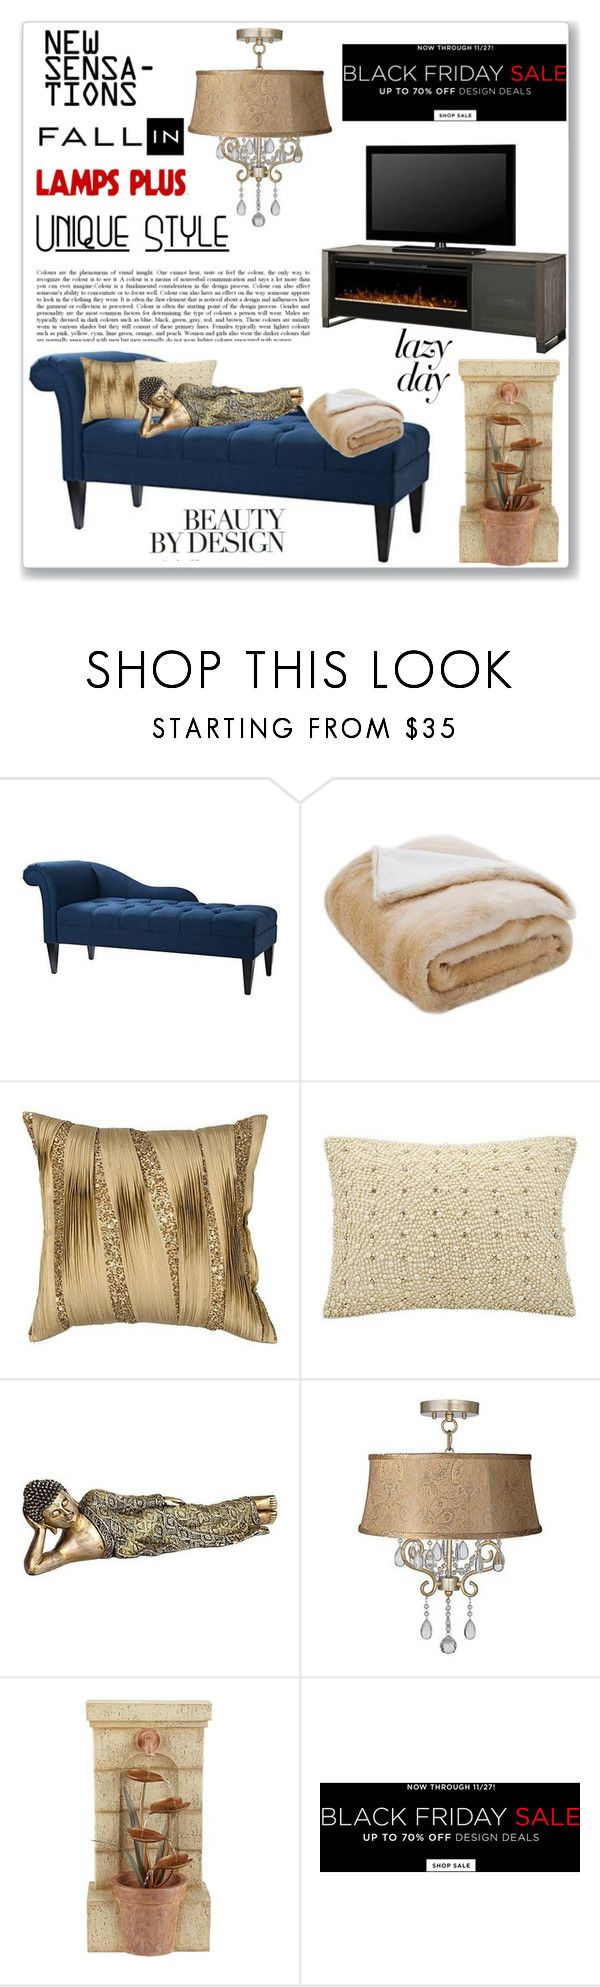 """Sleep In: Lazy Day Lamps Plus"" by kiveric-damira ❤ liked on Polyvore featuring interior, interiors, interior design, home, home decor, interior decorating, Safavieh, Kathy Ireland, John Timberland and modern"